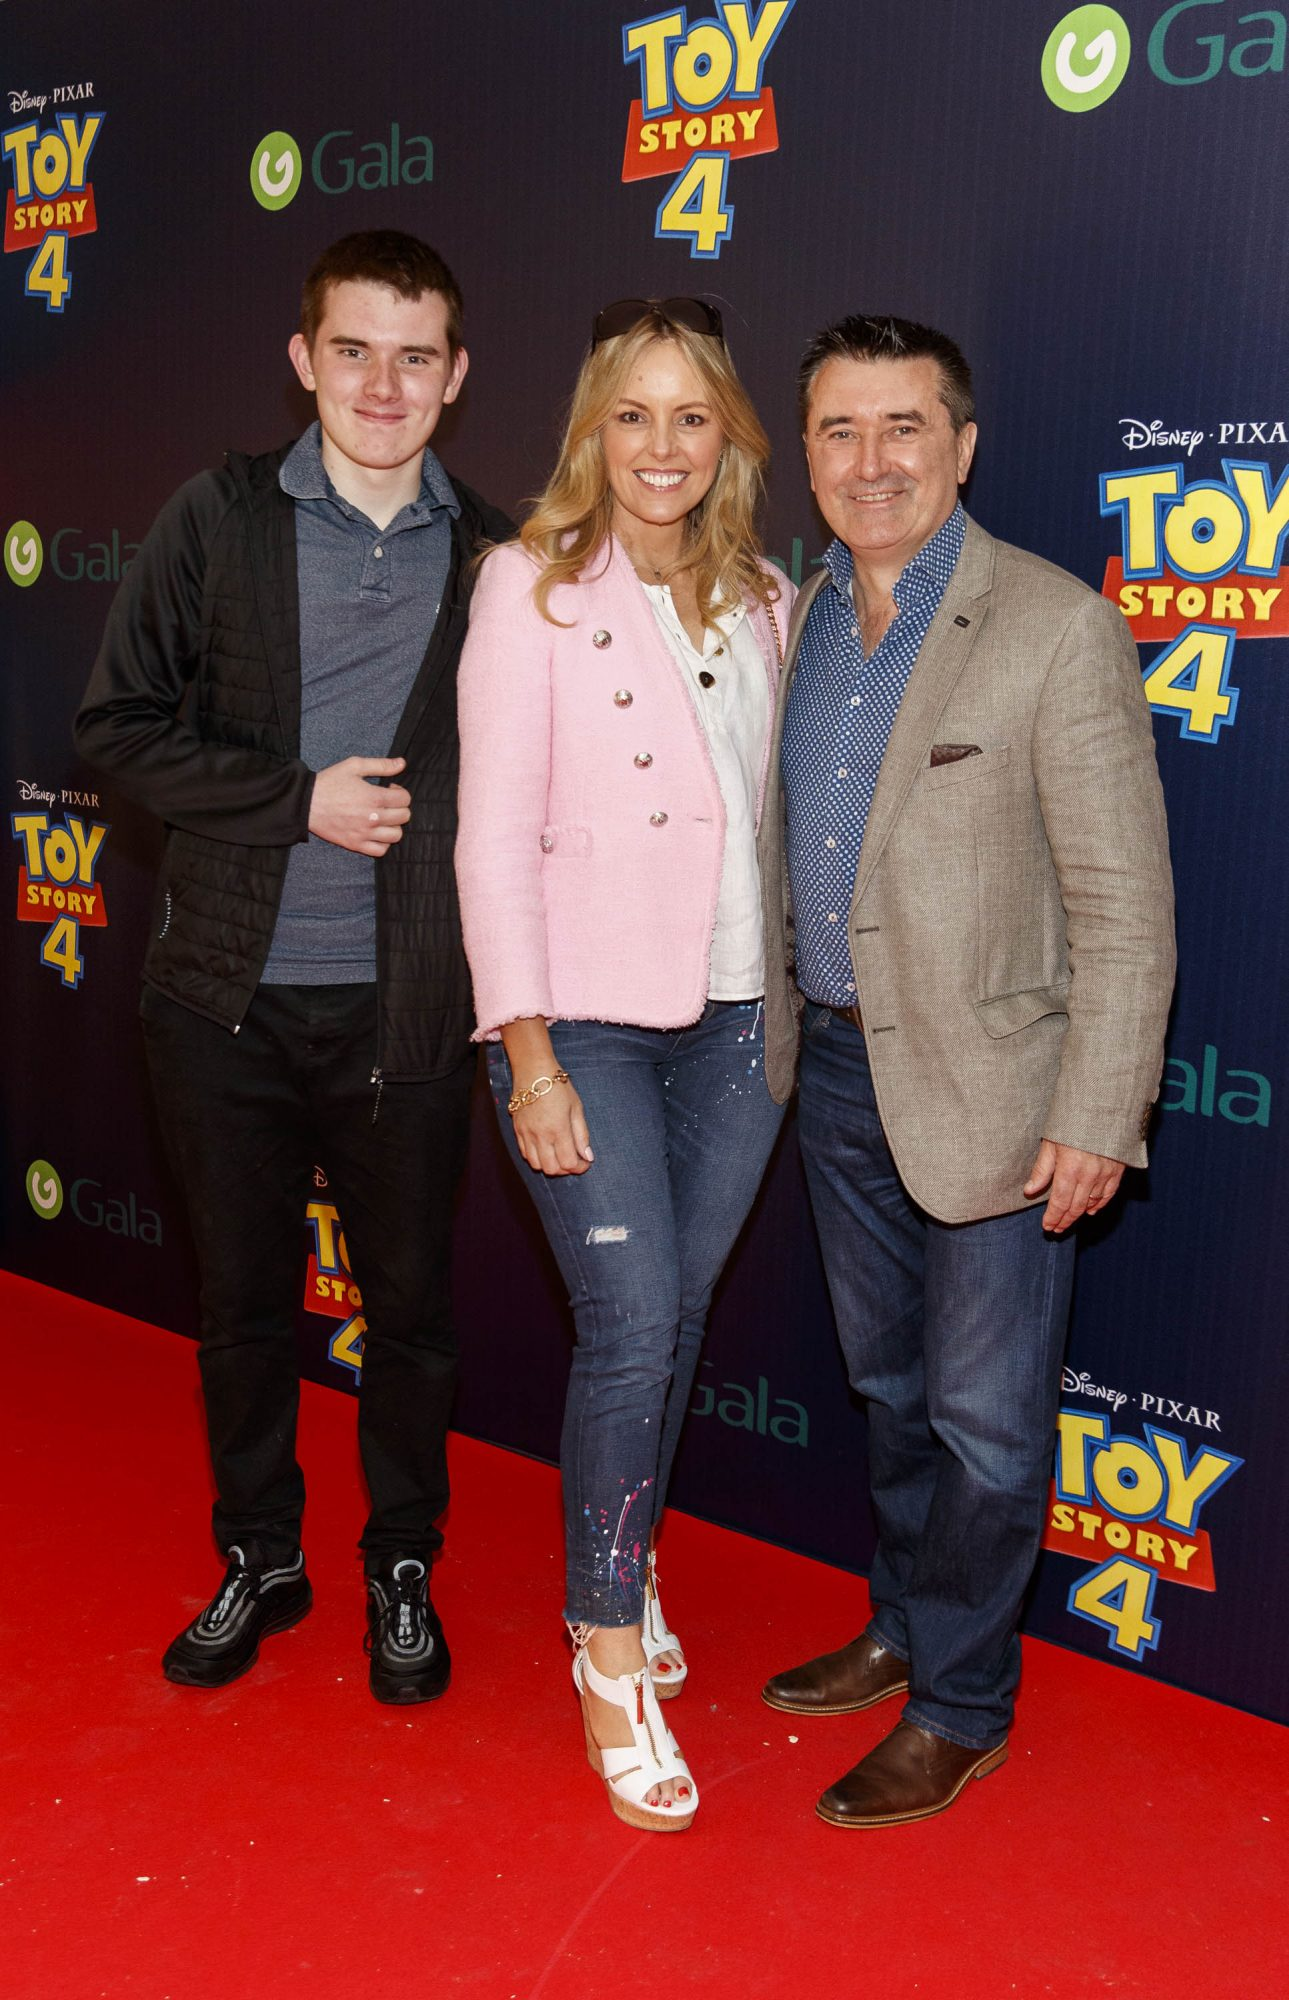 Jenny McCarthy and Martin King with son Alex (left) pictured at the special event screening of Disney Pixar's TOY STORY 4 in the Light House Cinema Dublin. Picture: Andres Poveda